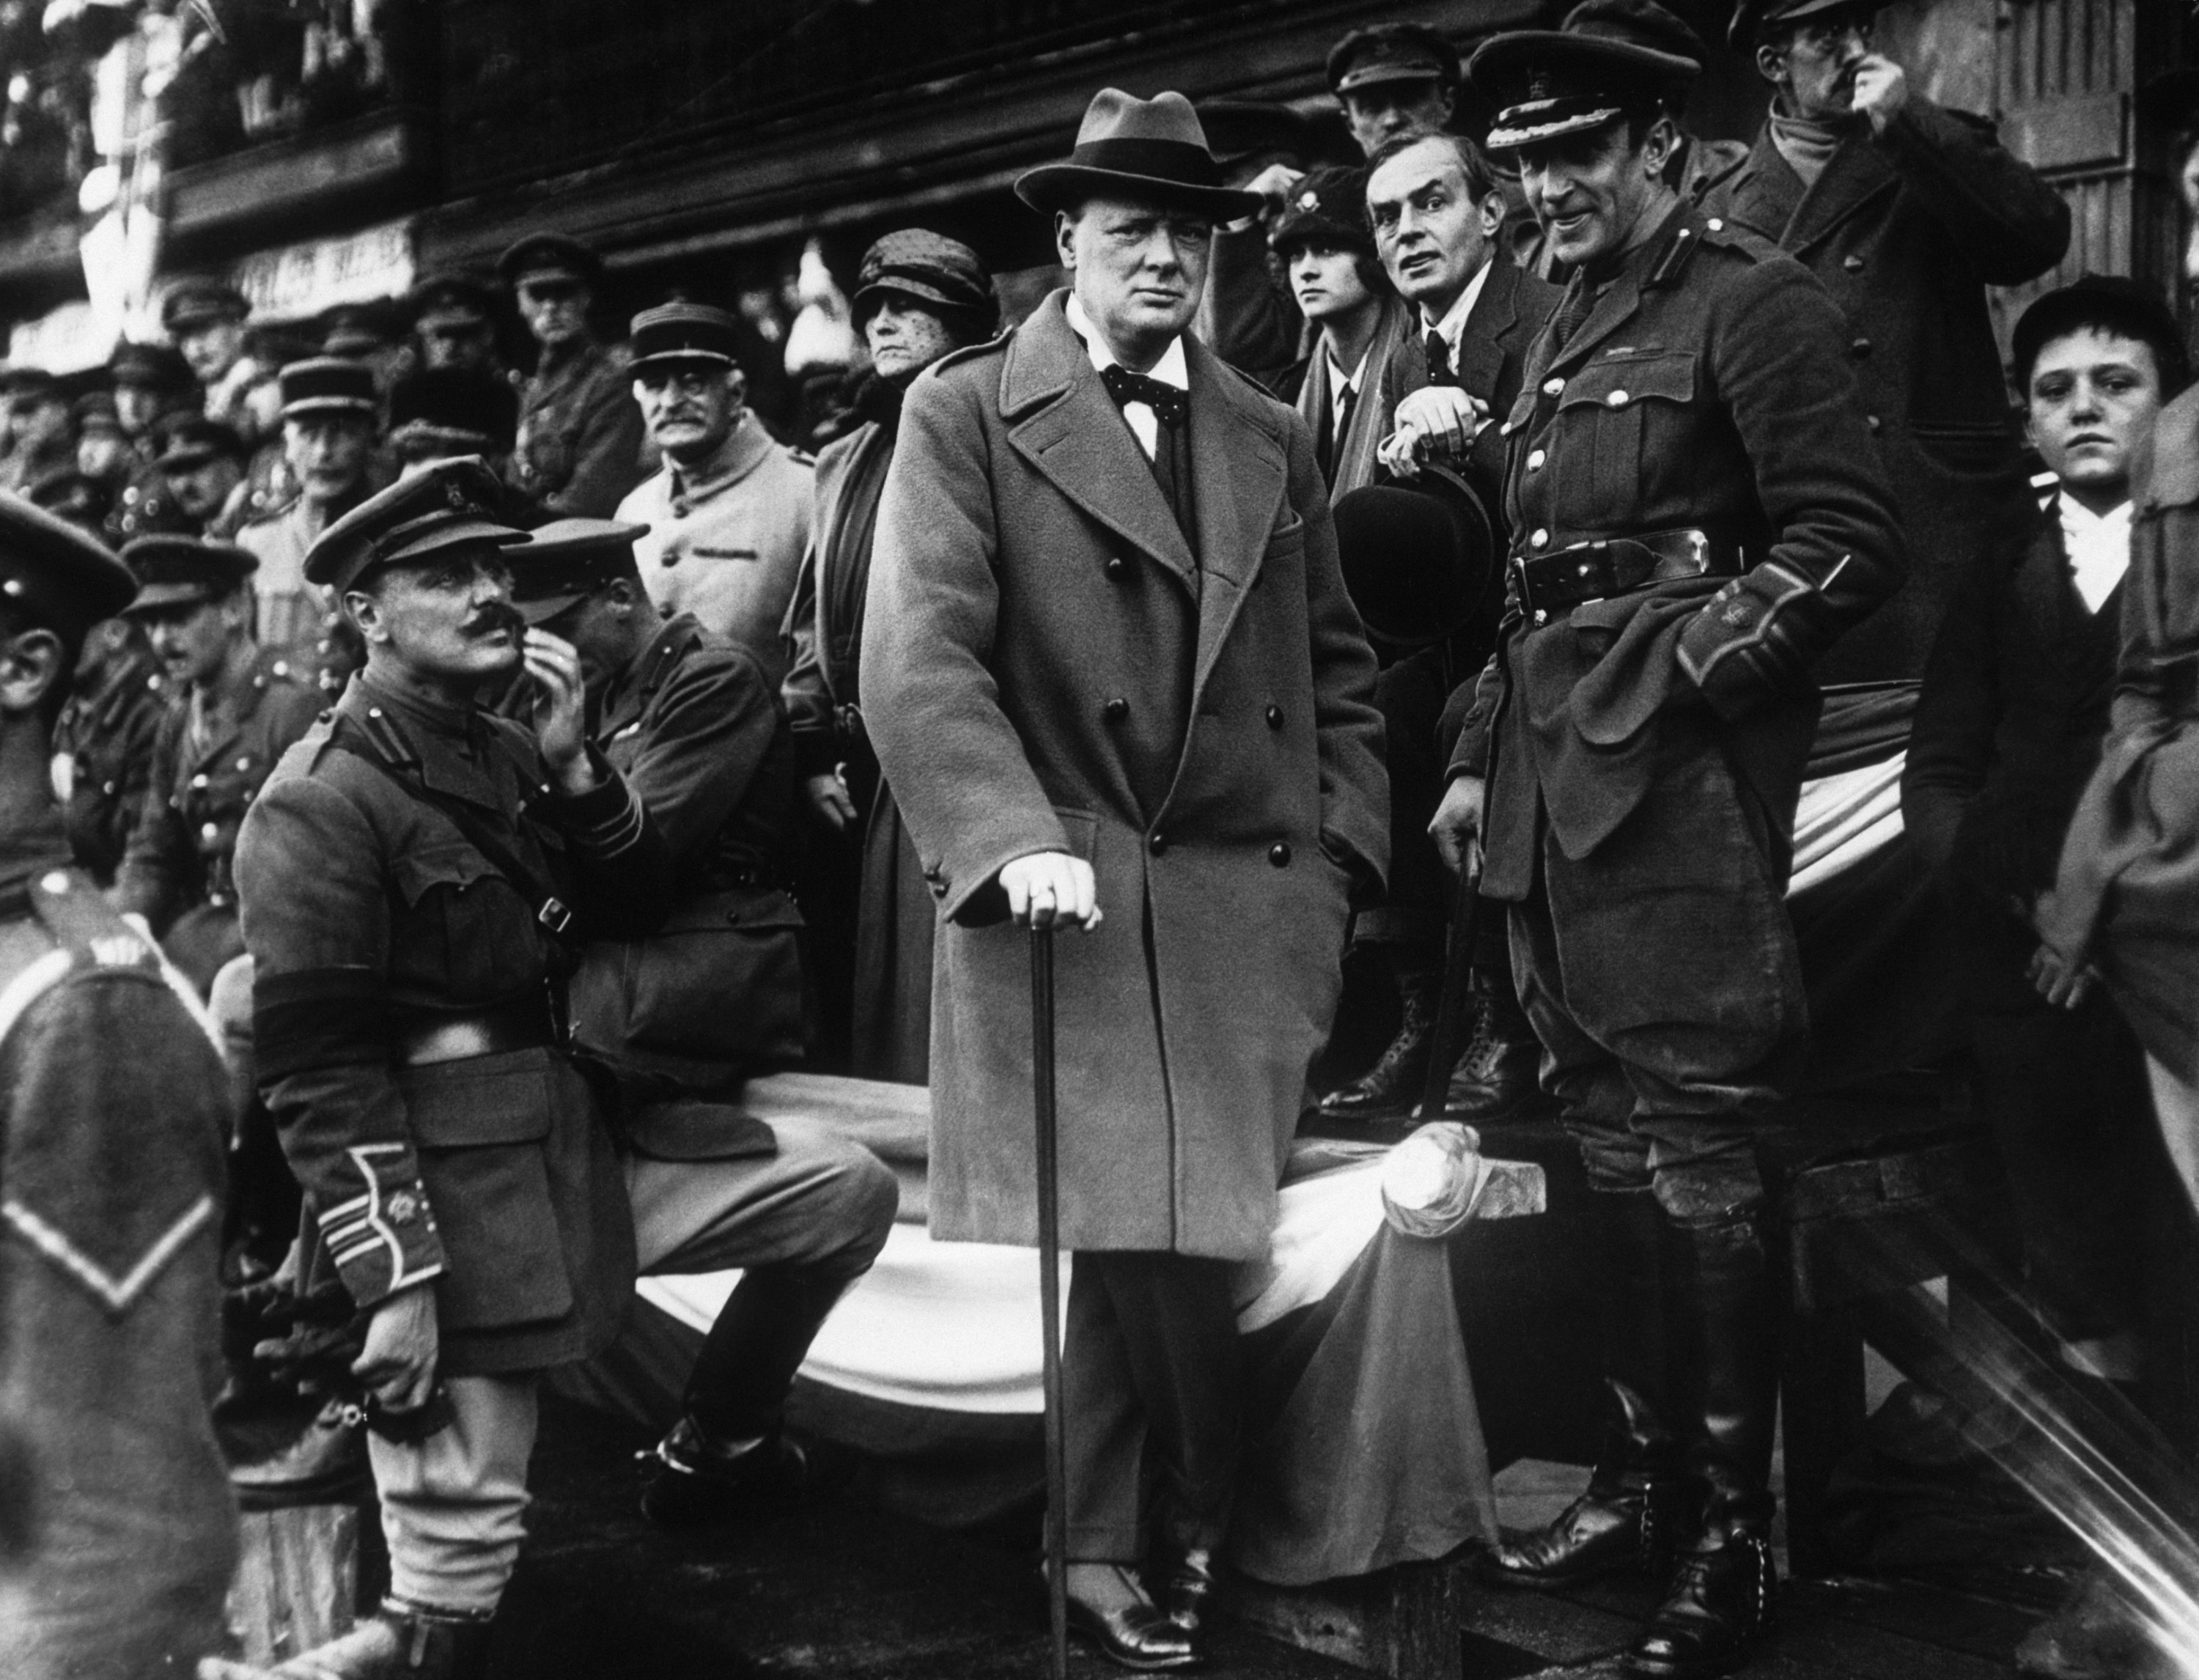 Winston Churchill, then Secretary of State for War, in the Grand Stand at the Grande Place at Lille, watching the 47th Division marching past in 1918. (Getty Images)